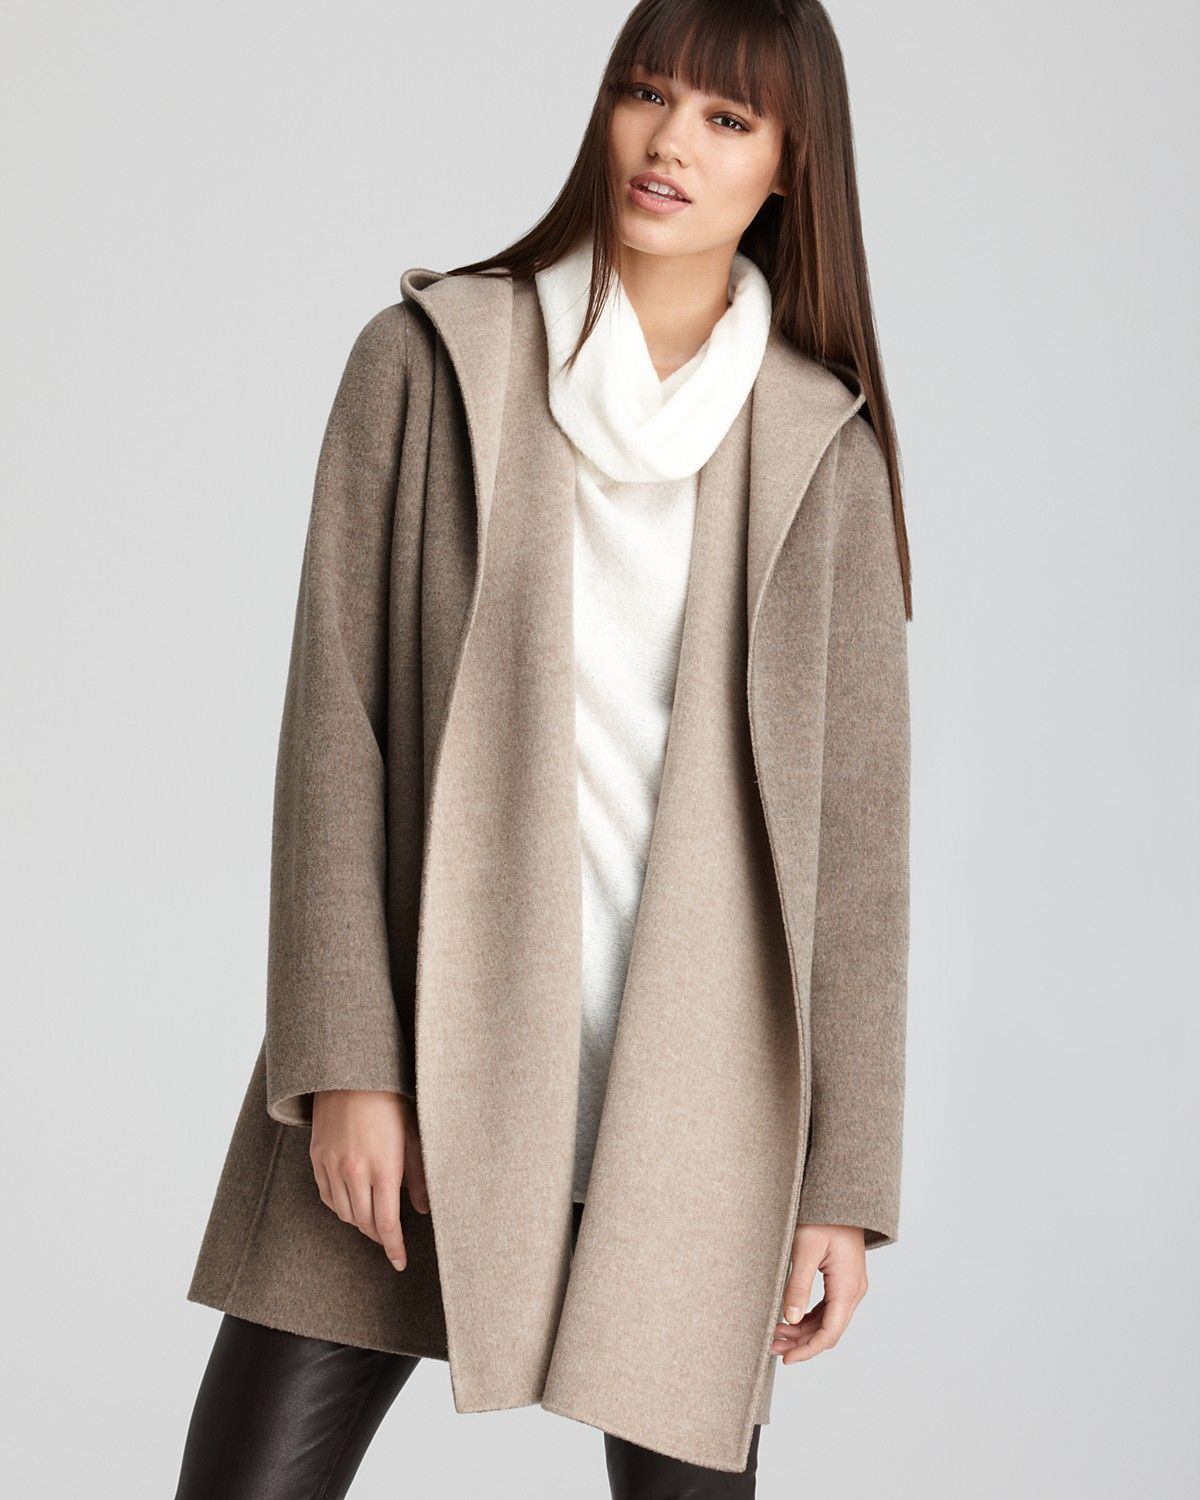 draped face fall marcus lookbook coat neiman drape nawo long drapes hooded vince at double